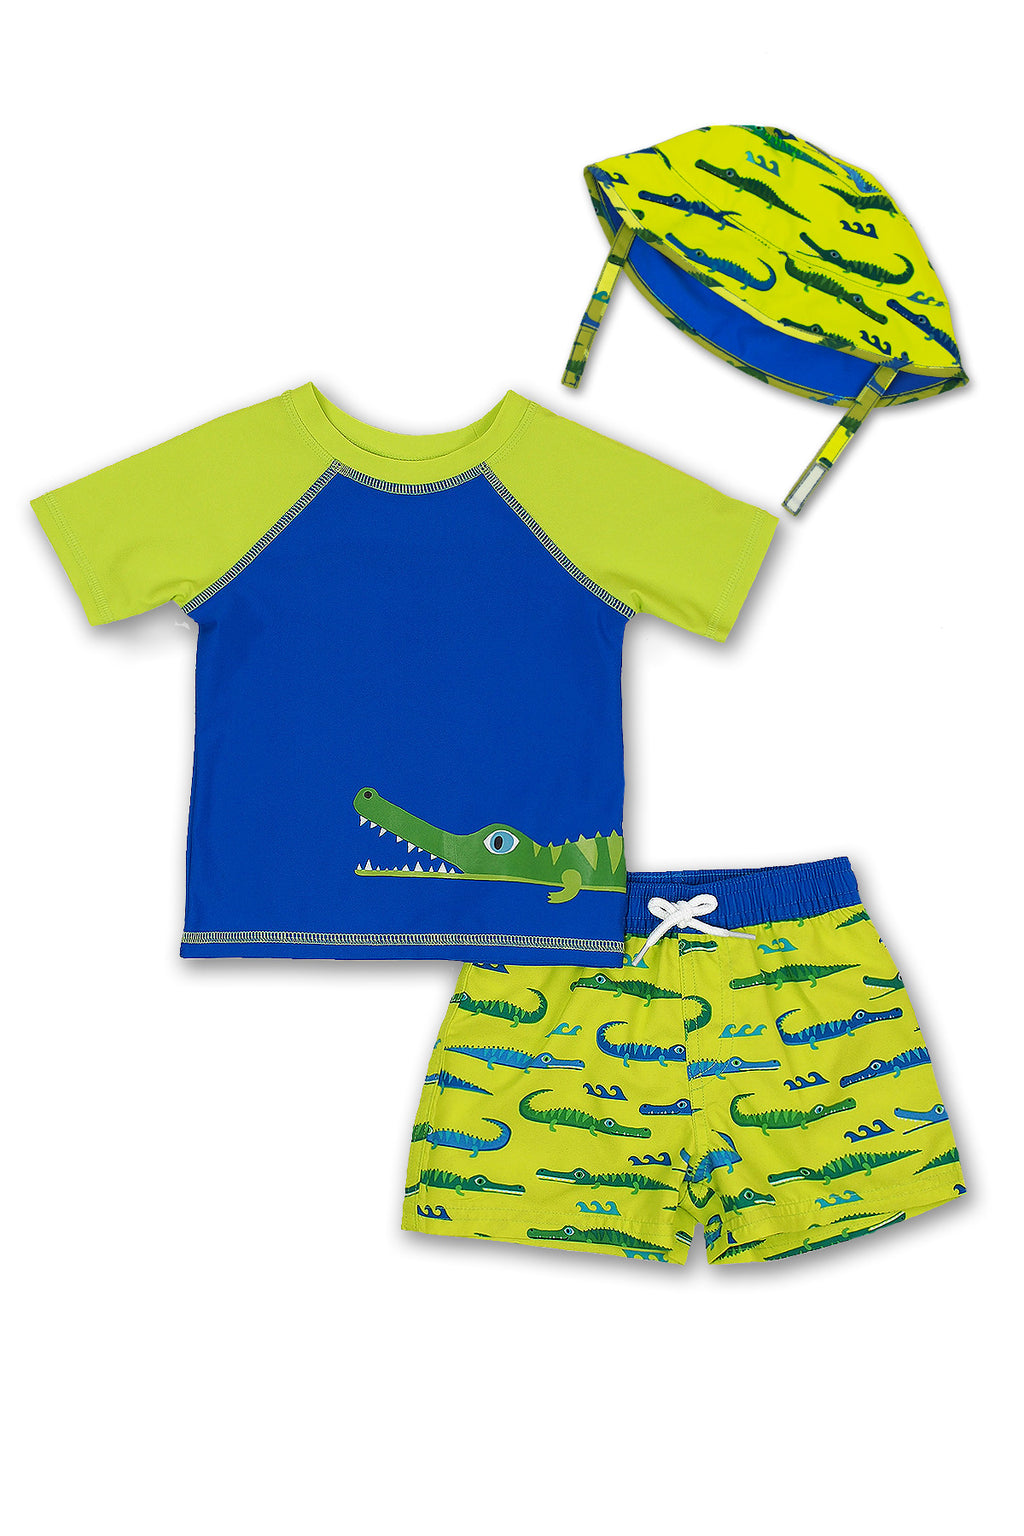 Boys Crocodile Short Sleeve Rash Guard & Swim Trunks With Bucket Hat 3pc Set, Lime